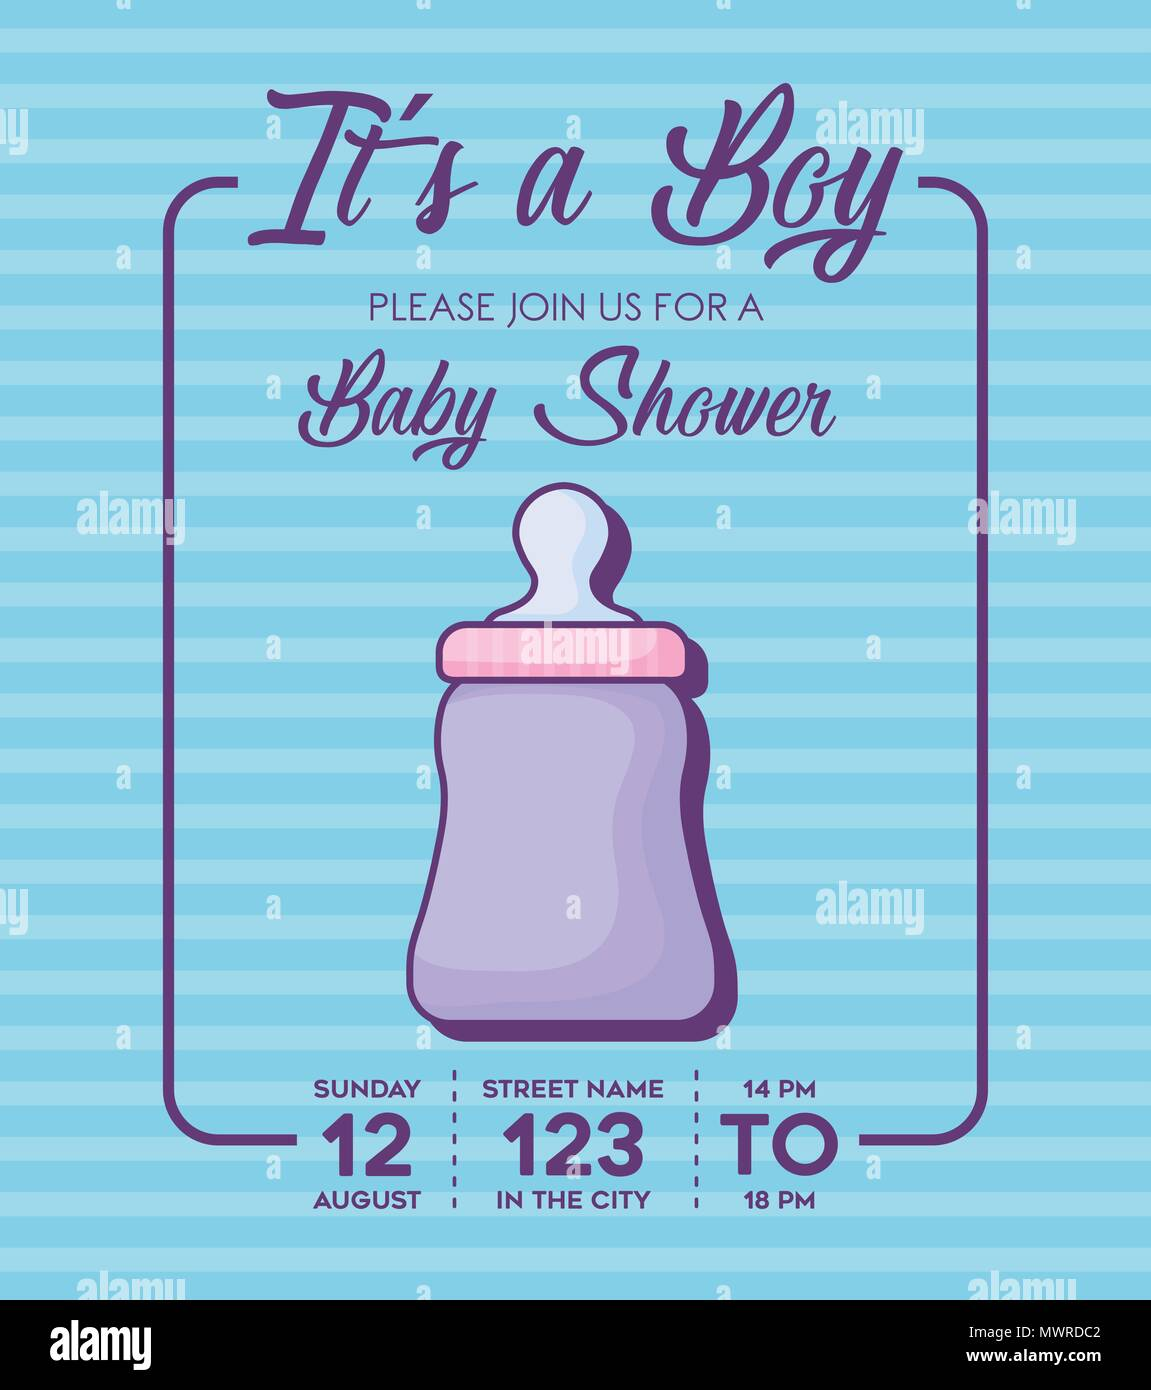 baby shower invitation with its a boy concept with cute baby bottle ...